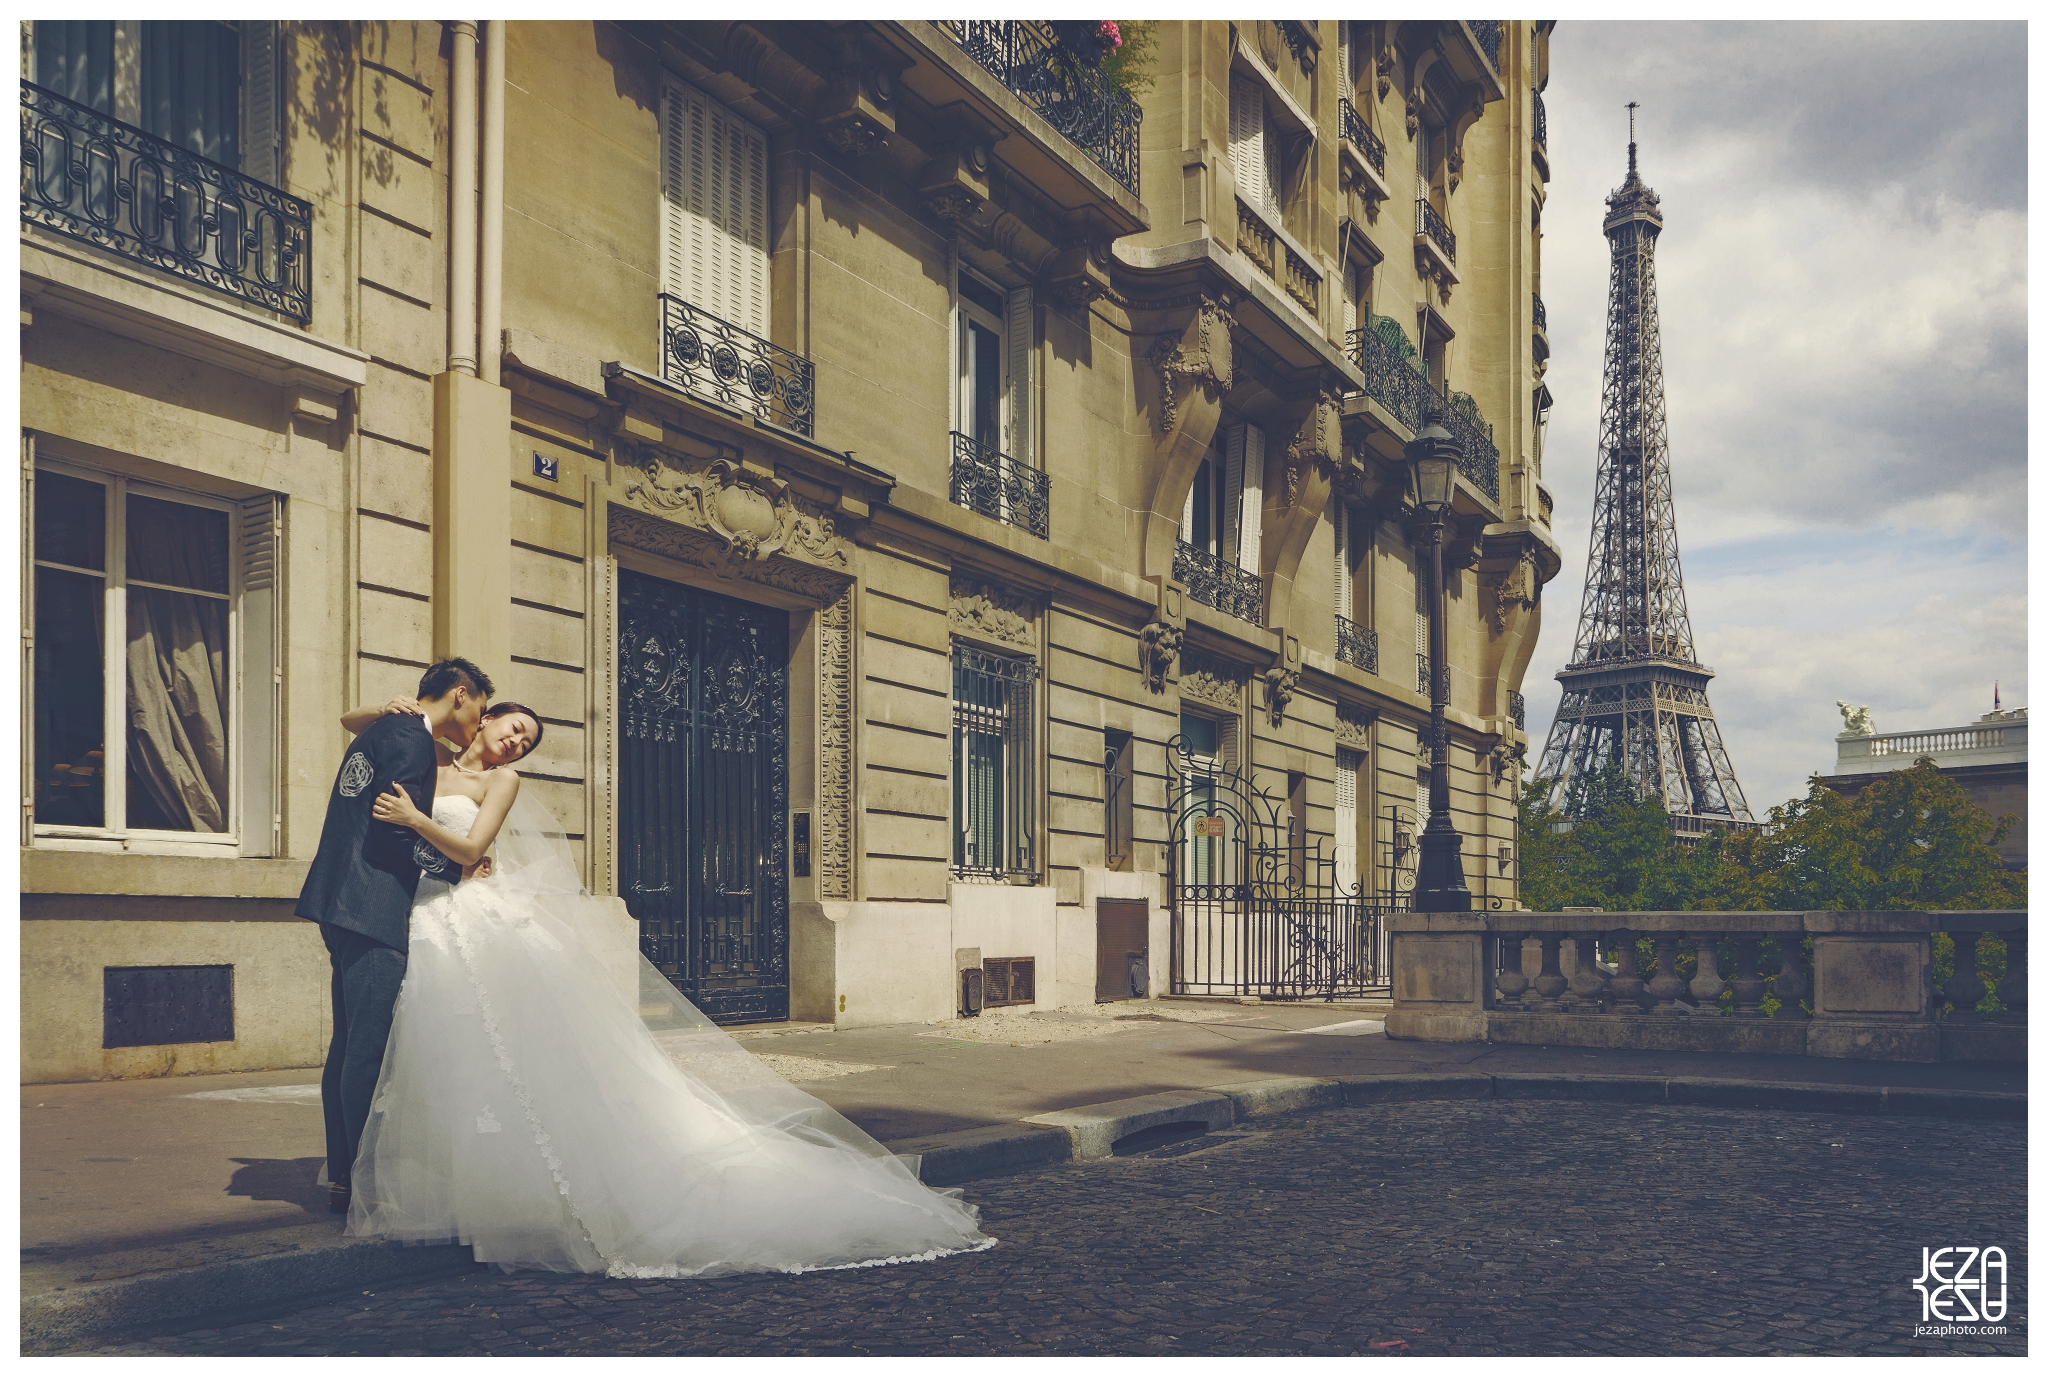 paris Pont Alexandre III The Eiffel Tower Musée du Louvre pre wedding engagement photo session by jeza photography zabrina deng and jeremy chan